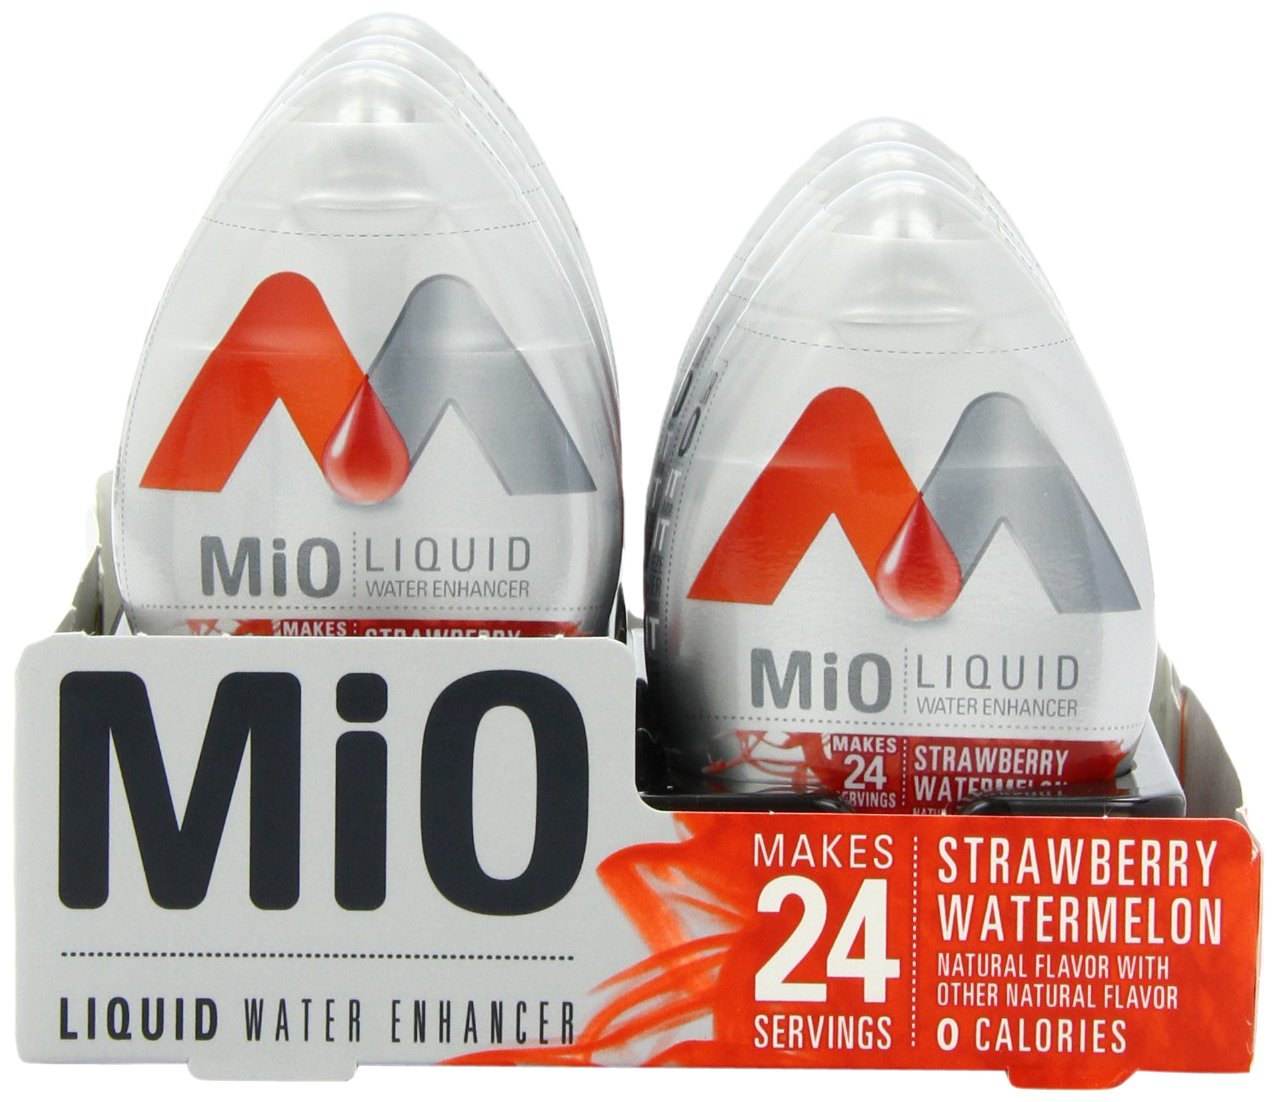 MiO Liquid Water Enhancer, Strawberry Watermelon, 1.62 Ounce (Pack of 12) by Mio